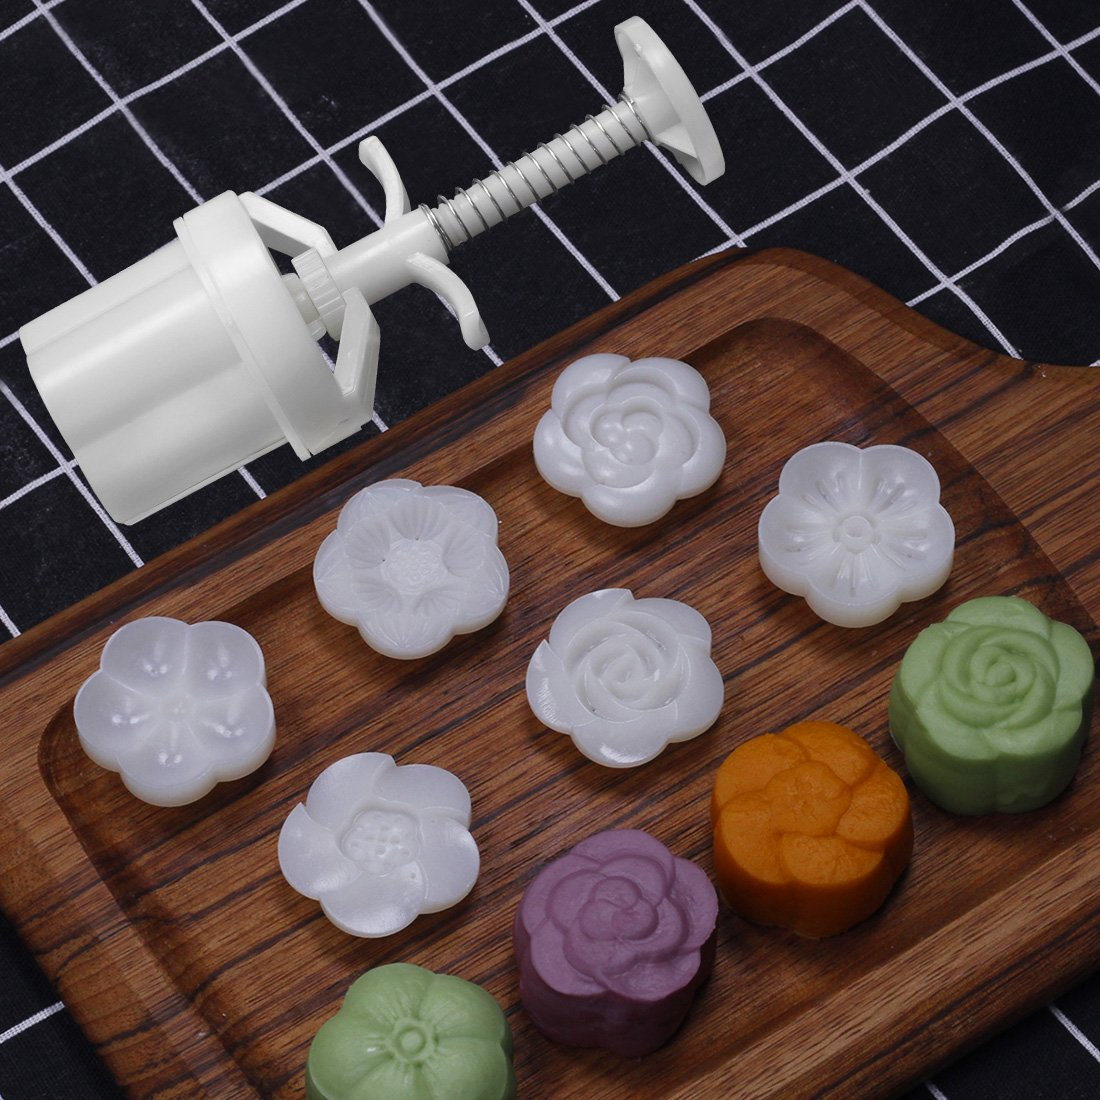 Dltsli 50g 6 Stamps Cookie Stamps Moon Cake Mold, Thickness Adjustable Christmas Cookie Press DIY Decoration Hand Press Cutter Cake Mold by Dltsli (Image #3)